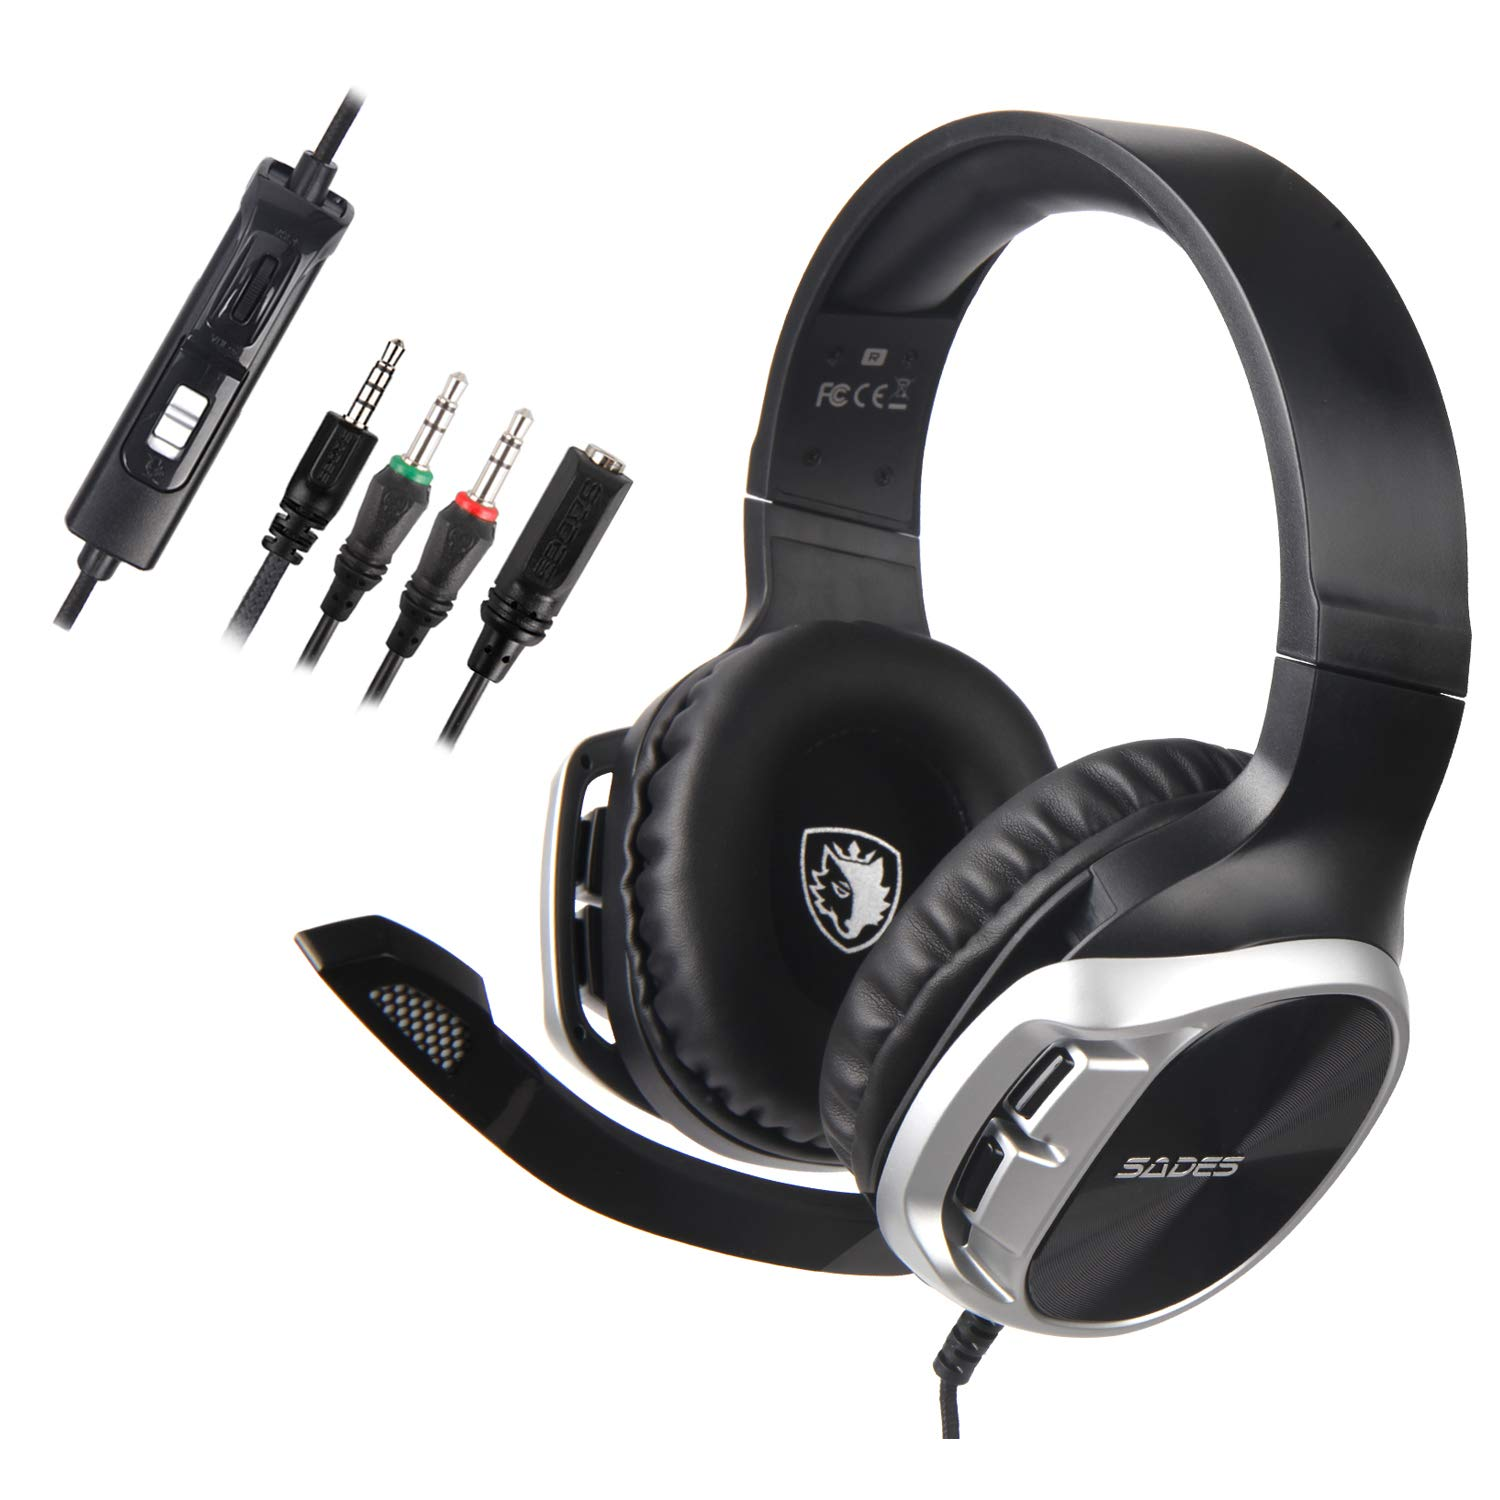 Sades Stereo Gaming Headset for Xbox One PS4 PC,Surround Sound Over-Ear Headphones Anti-Noise Mic,Volume Control Laptop, Mac,Smartphone, iPad – R17 Black Silver